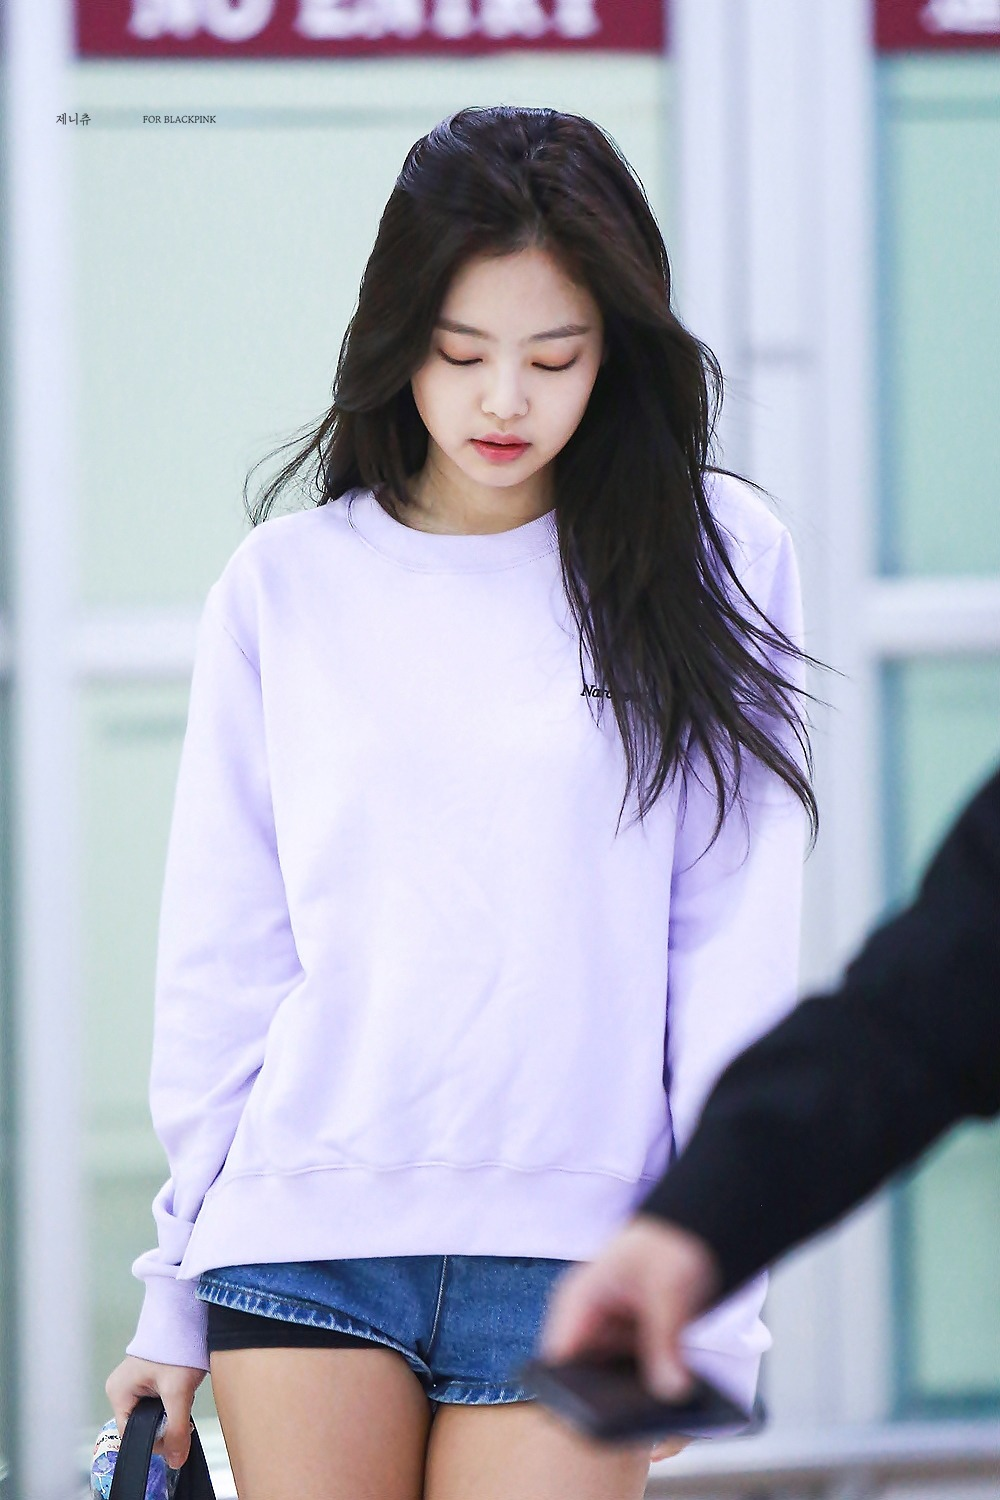 Top 10 Sexiest Outfits Of Blackpink Jennie 30 Photos